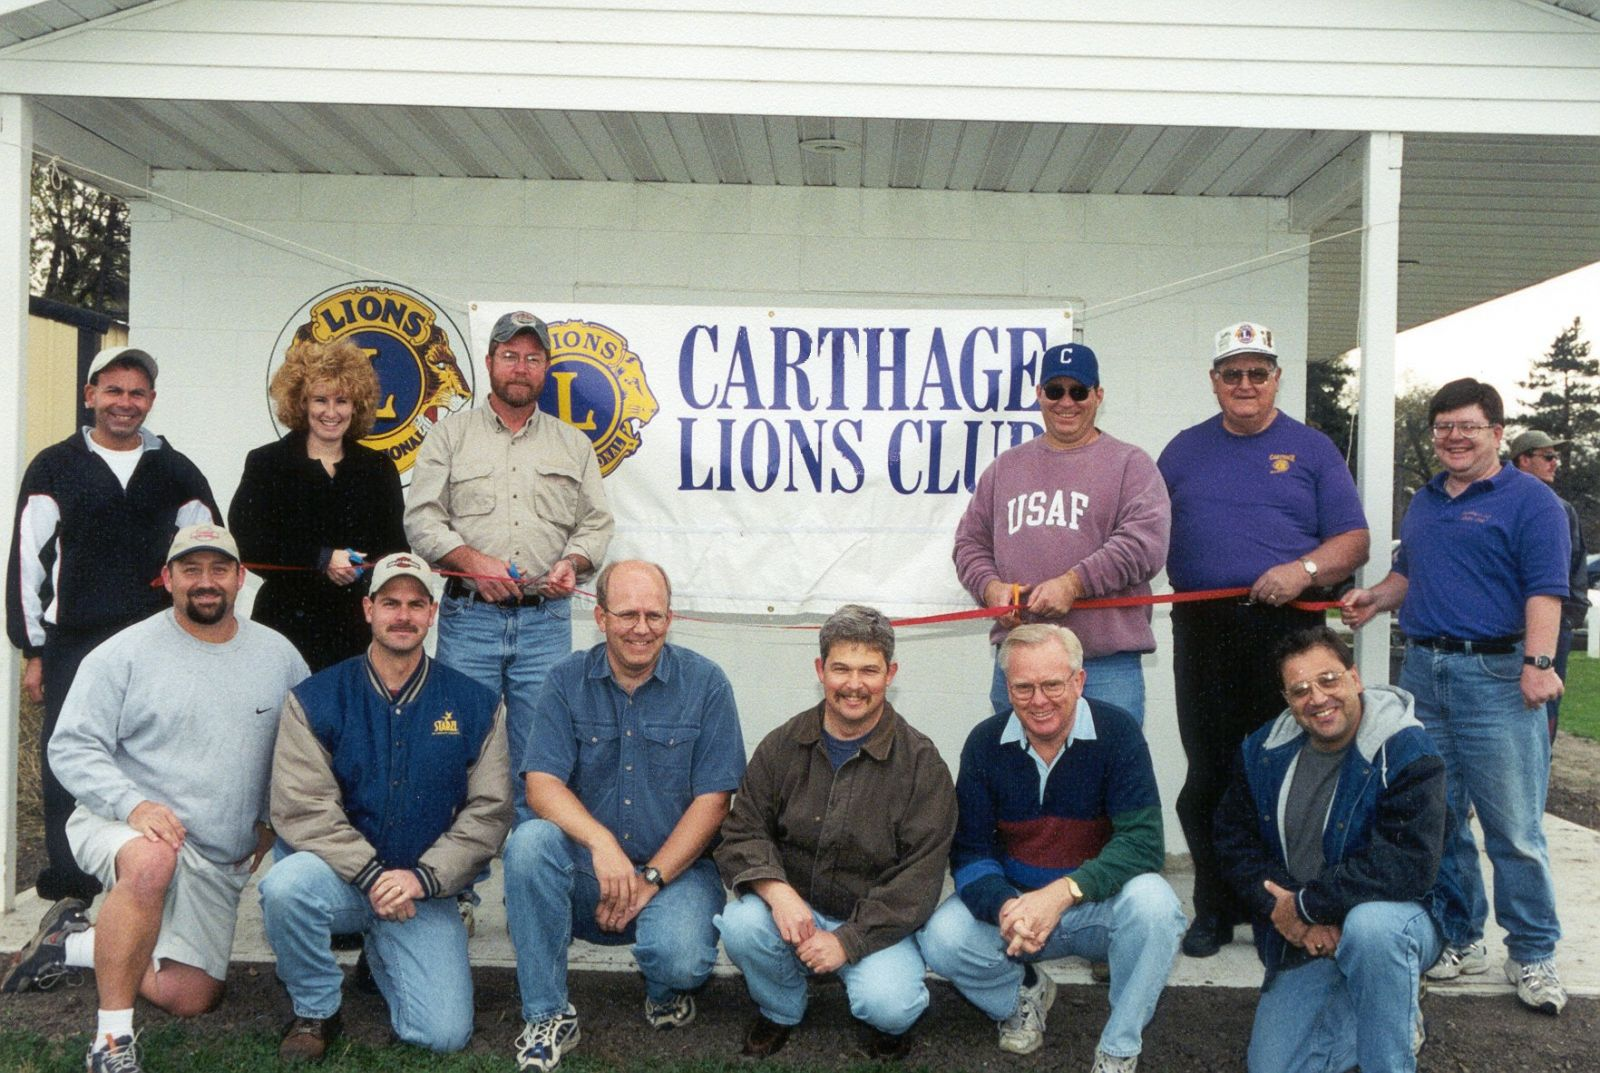 Members of the Lions Club at a Ribbon-Cutting ceremony for the new concession stand at the ballpark that we built.